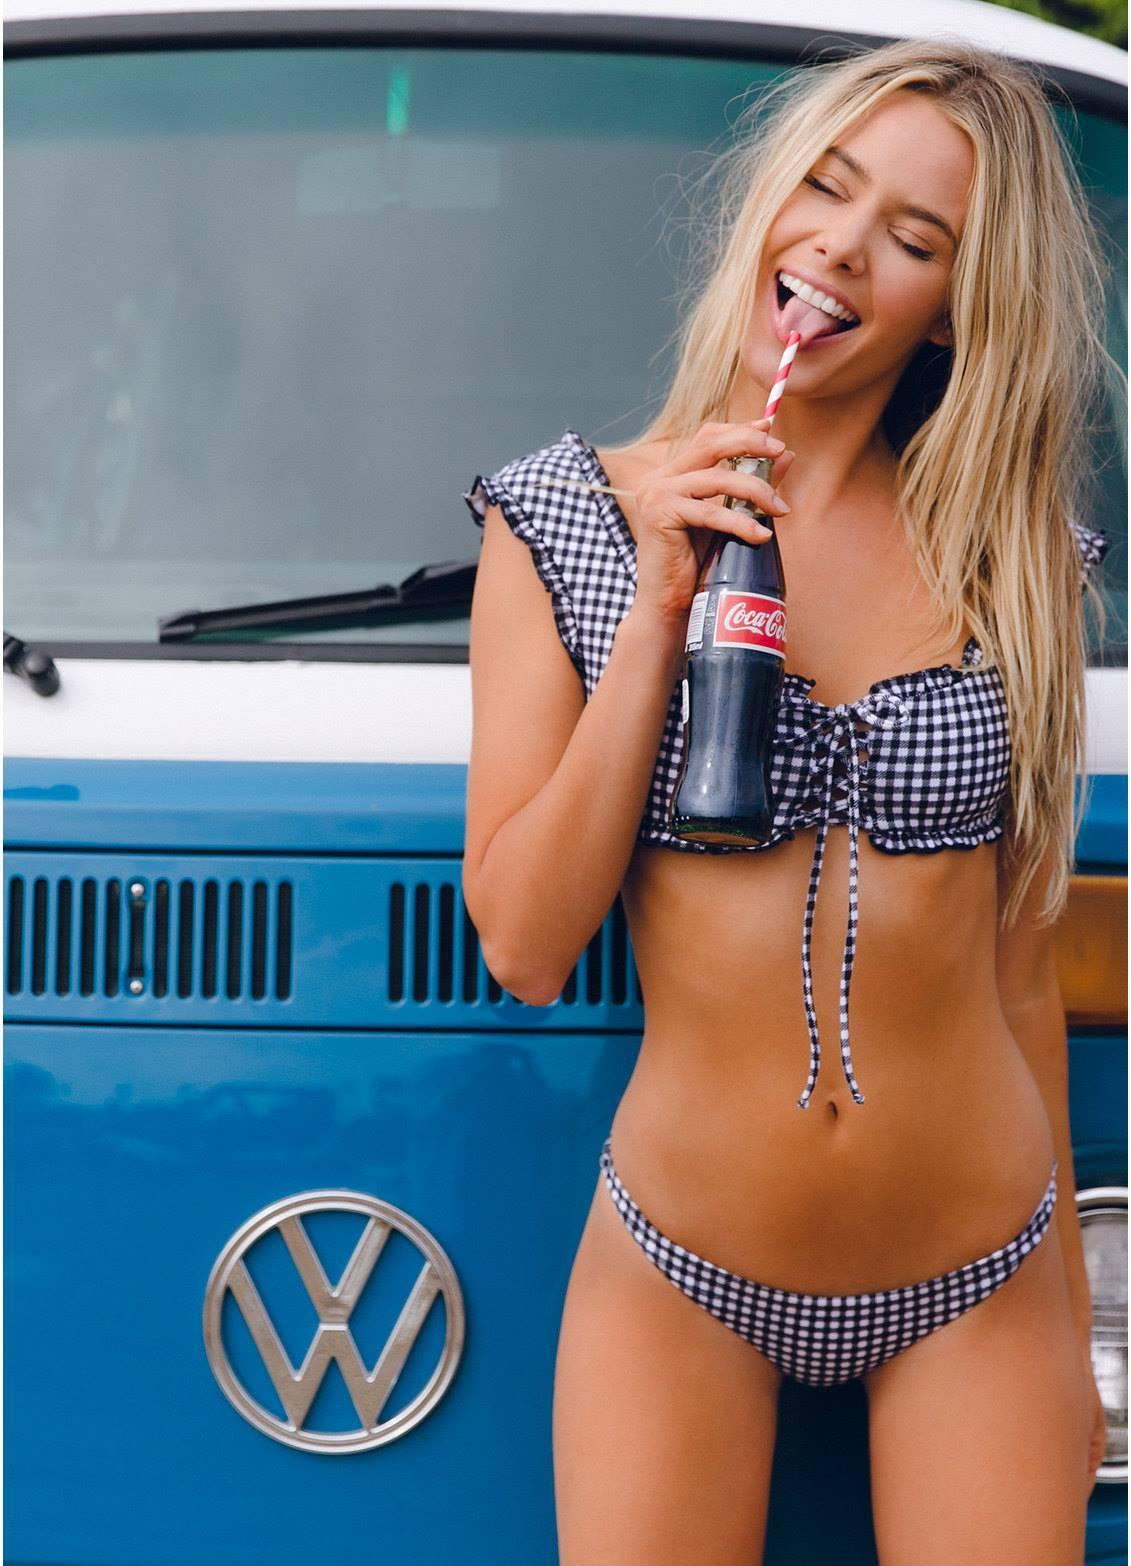 VW COKE & A SMILE